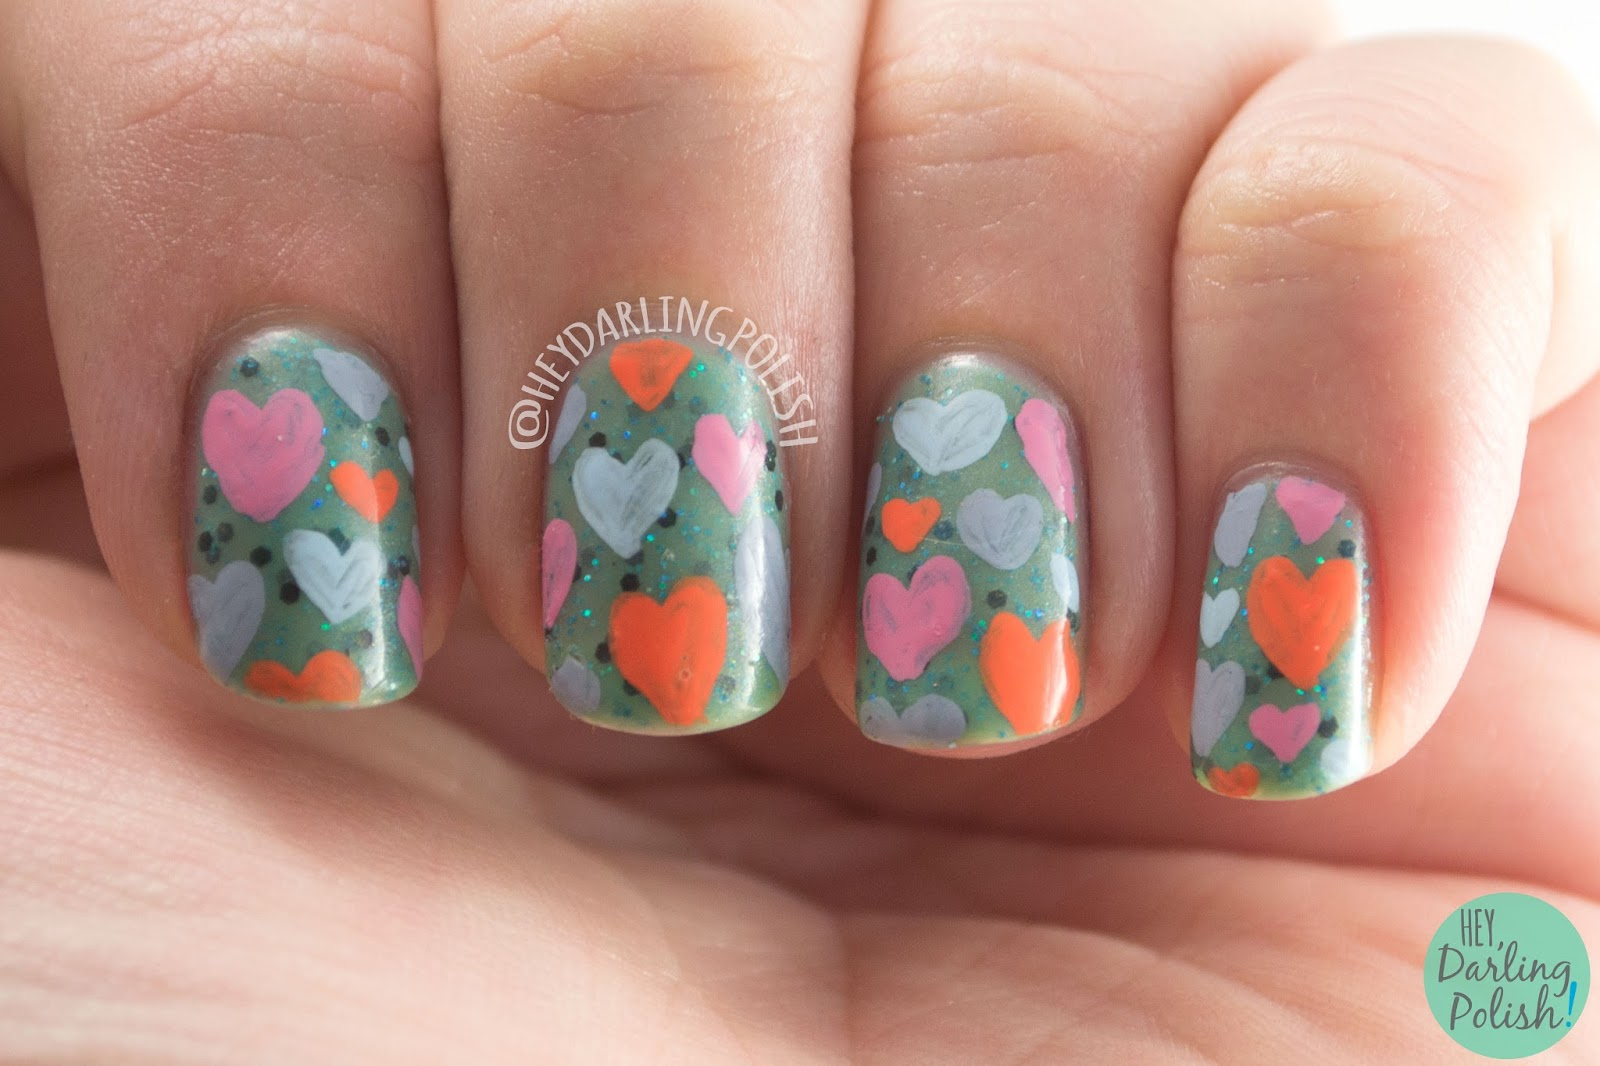 nails, nail art, nail polish, indie polish, hearts, hey darling polish, squishy face polish, nail linkup